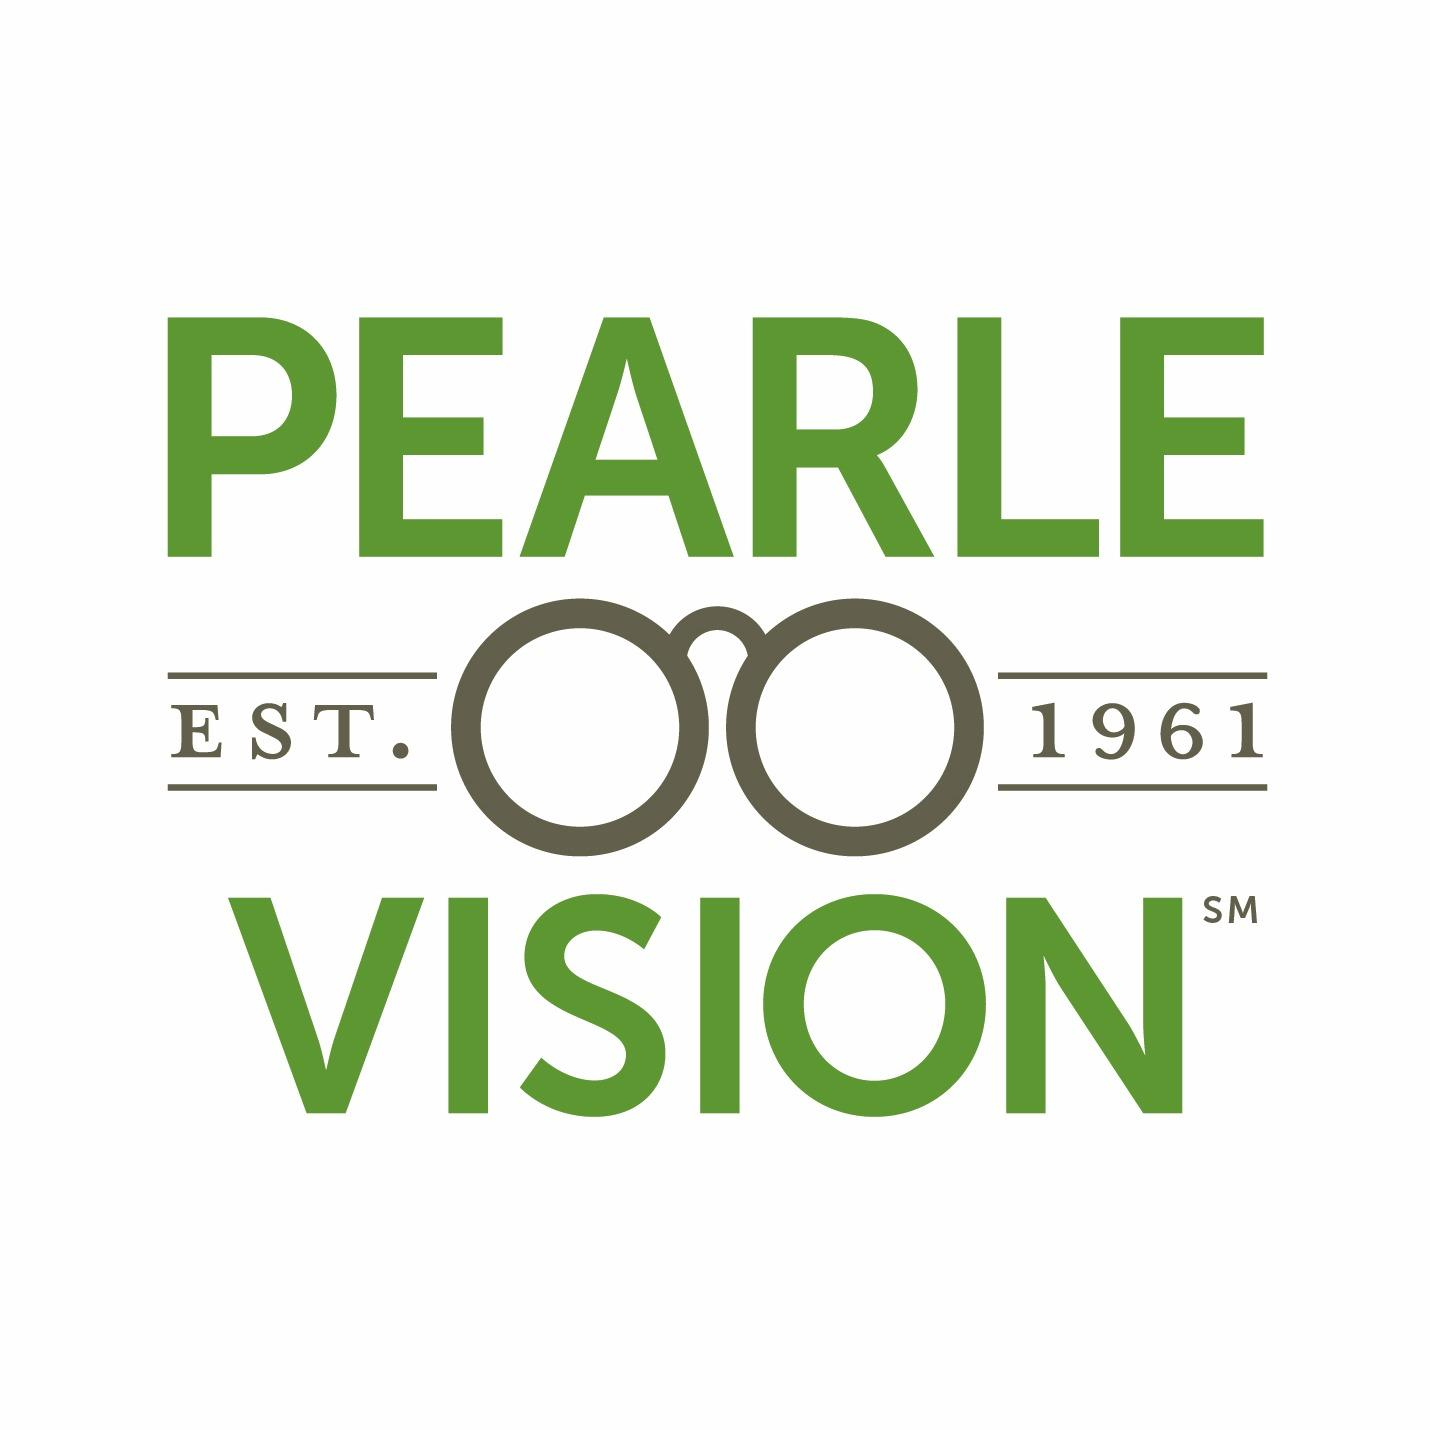 Pearle Vision - Cambridge, ON N1R 6B3 - (519)622-5660 | ShowMeLocal.com